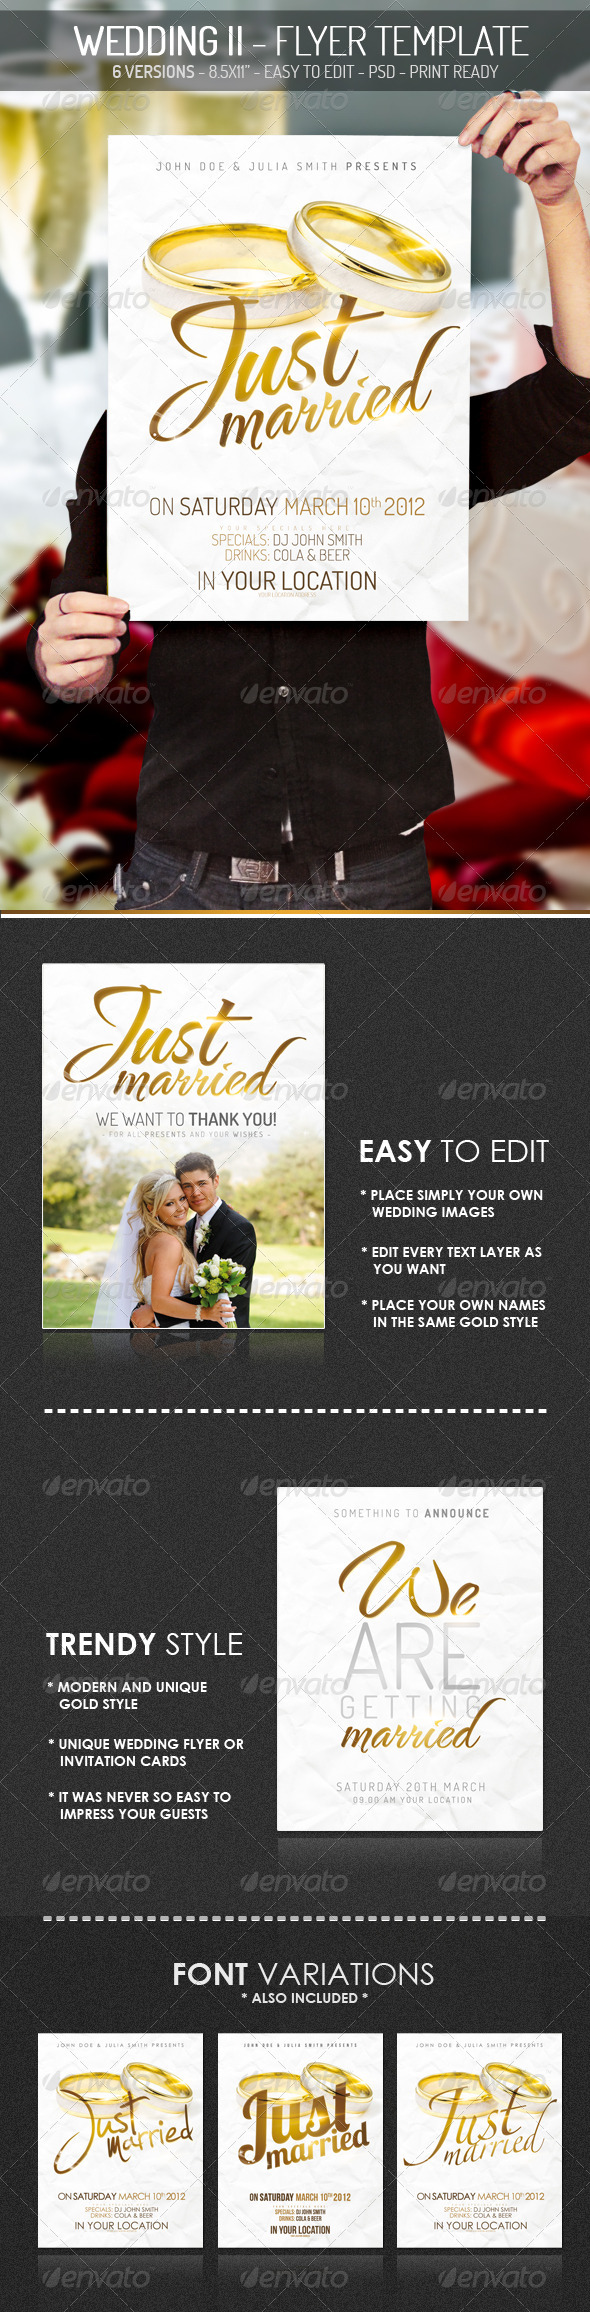 GraphicRiver Wedding II Flyer Template 1667481